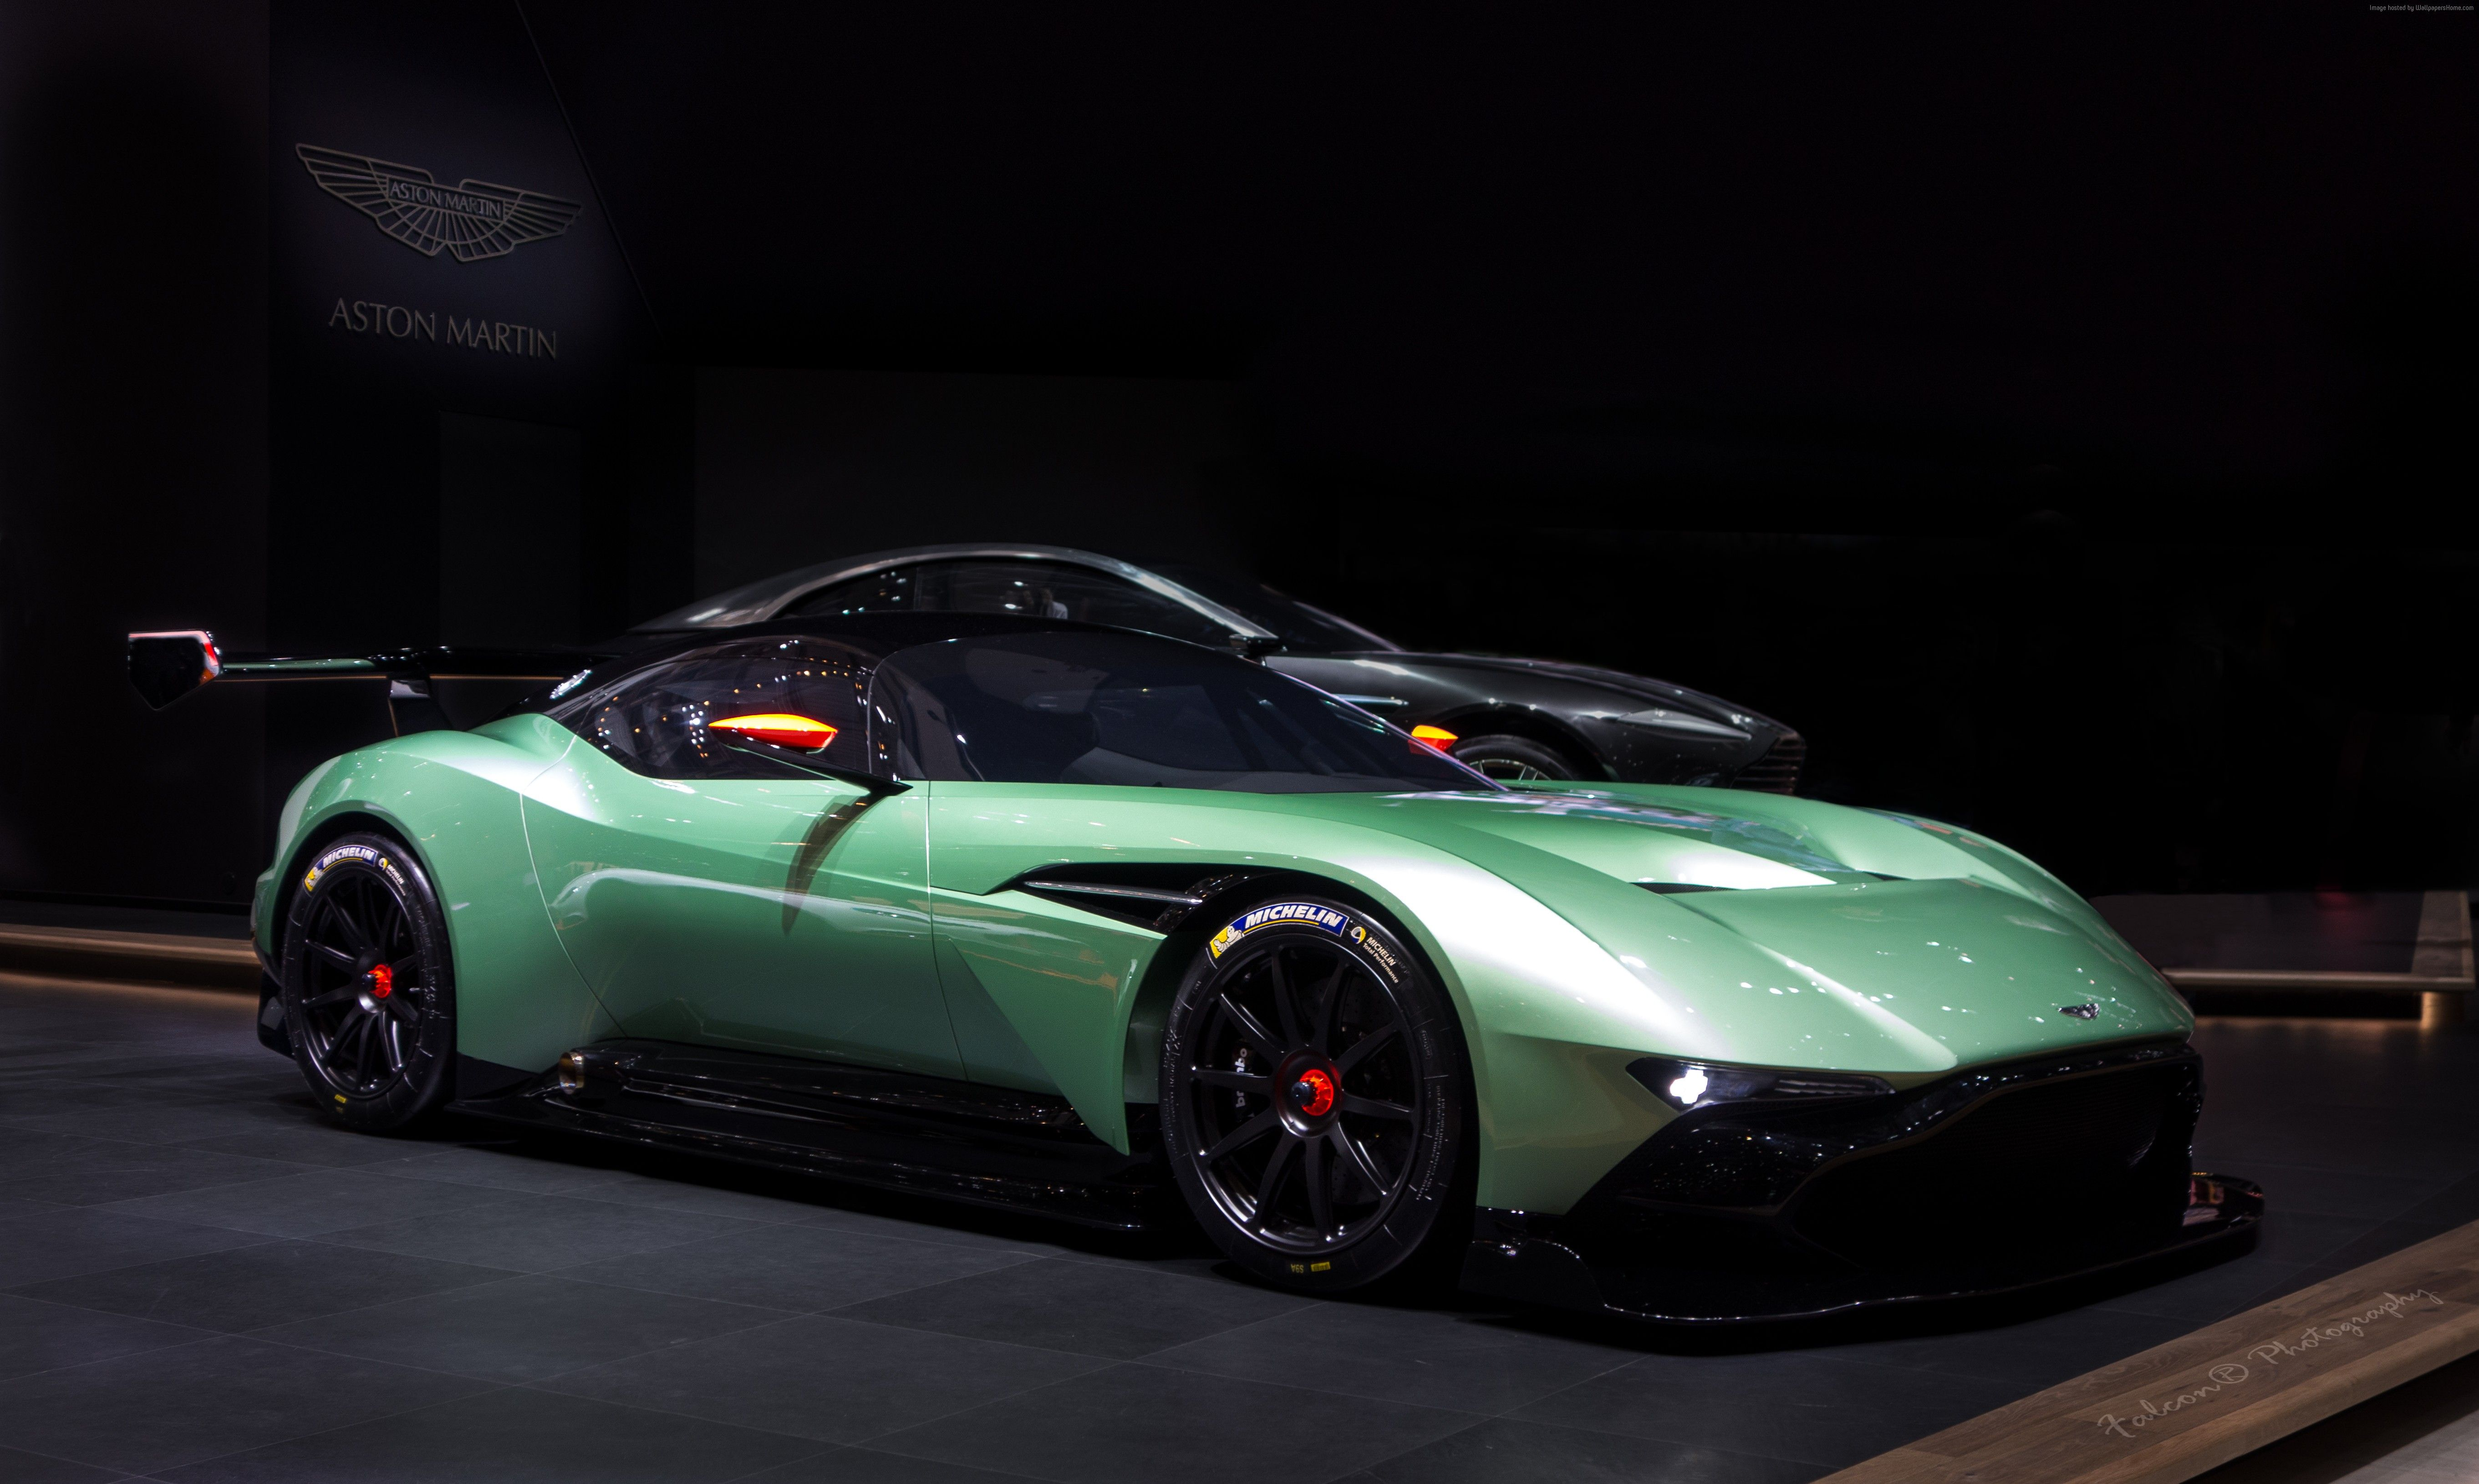 Wallpapers Aston Martin Vulcan, coupe, track only, green., Cars